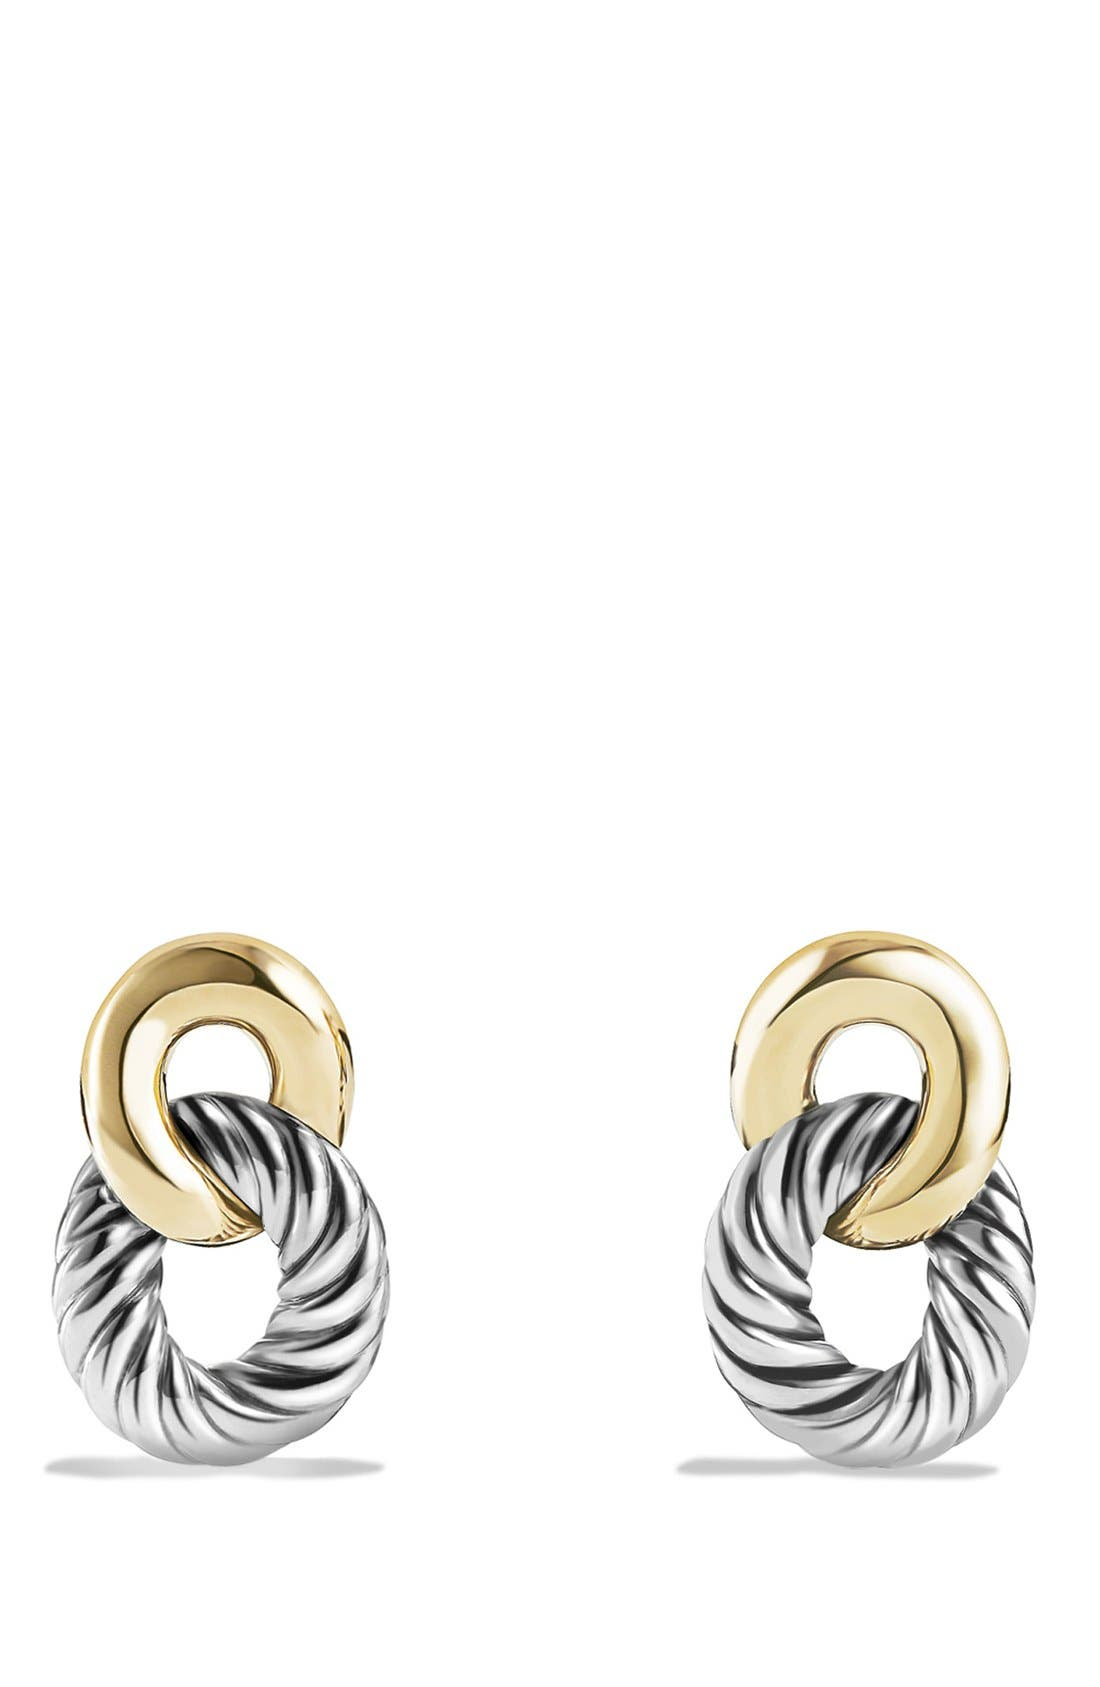 David Yurman 'Belmont' Curb Link Drop Earrings with 18K Gold